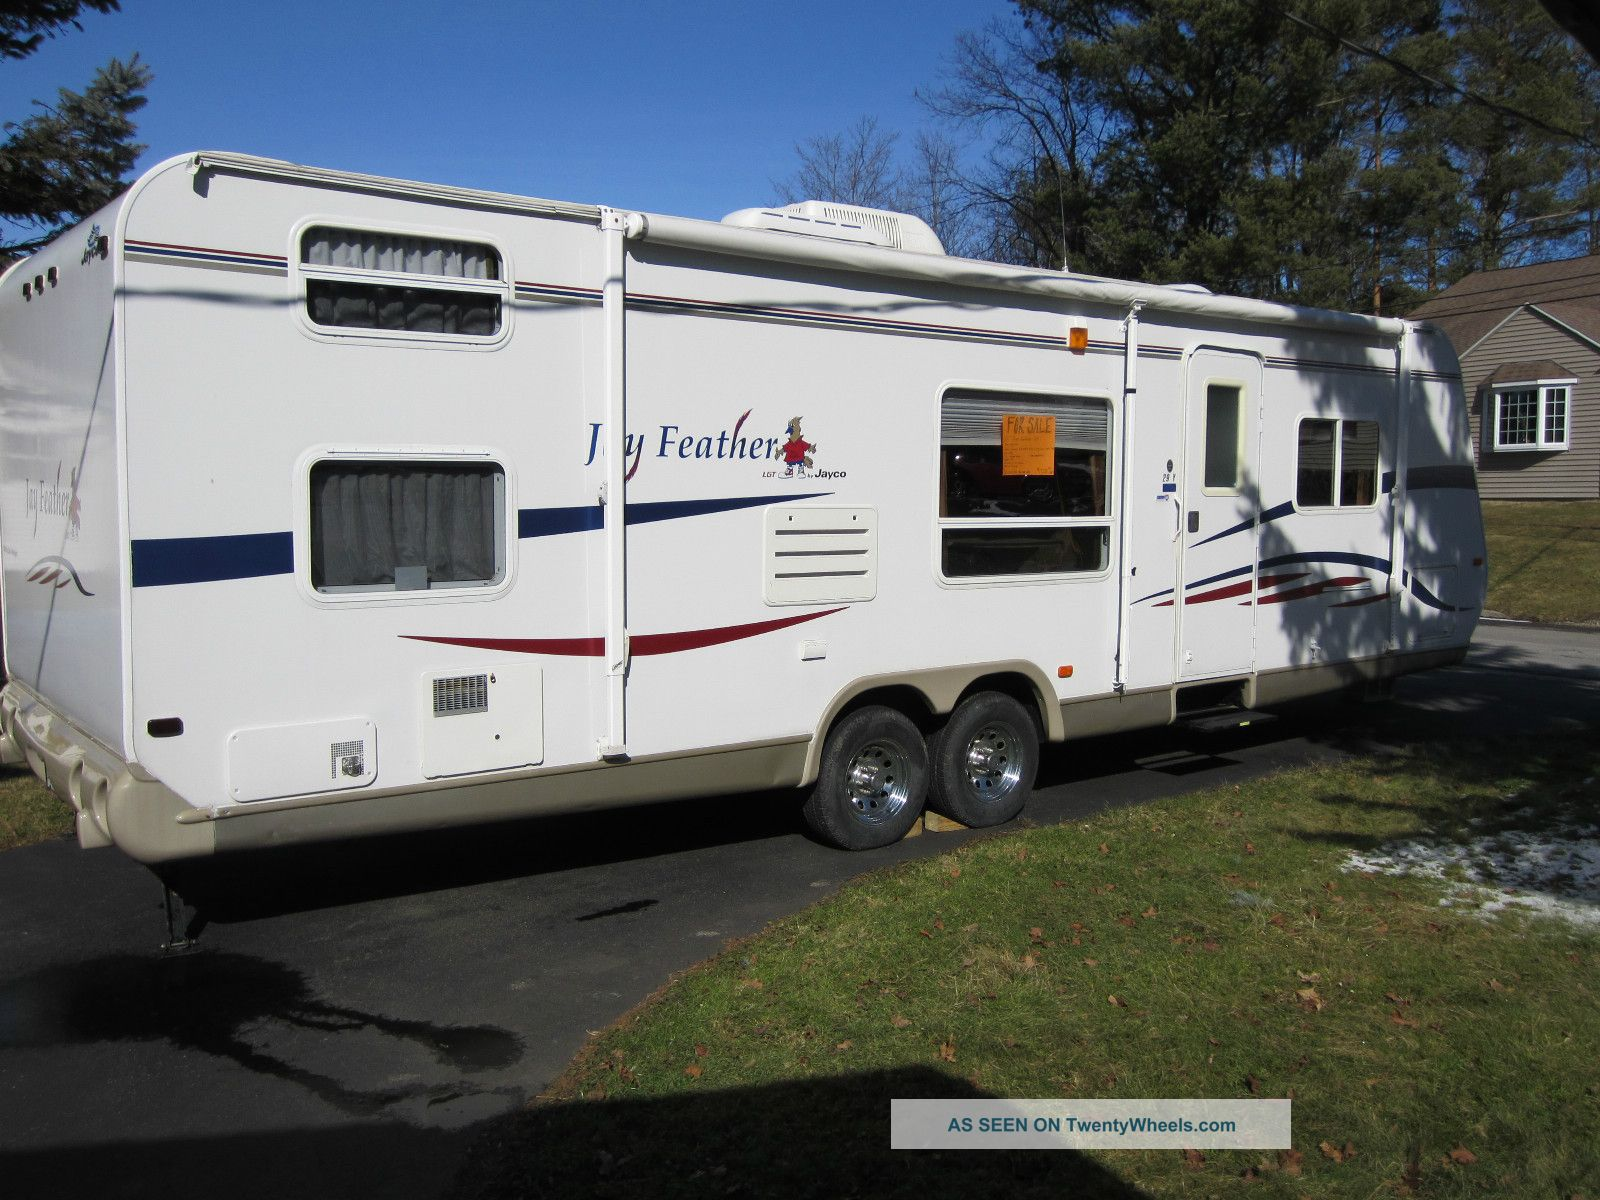 2007 Jayco Jayfeather Travel Trailers photo